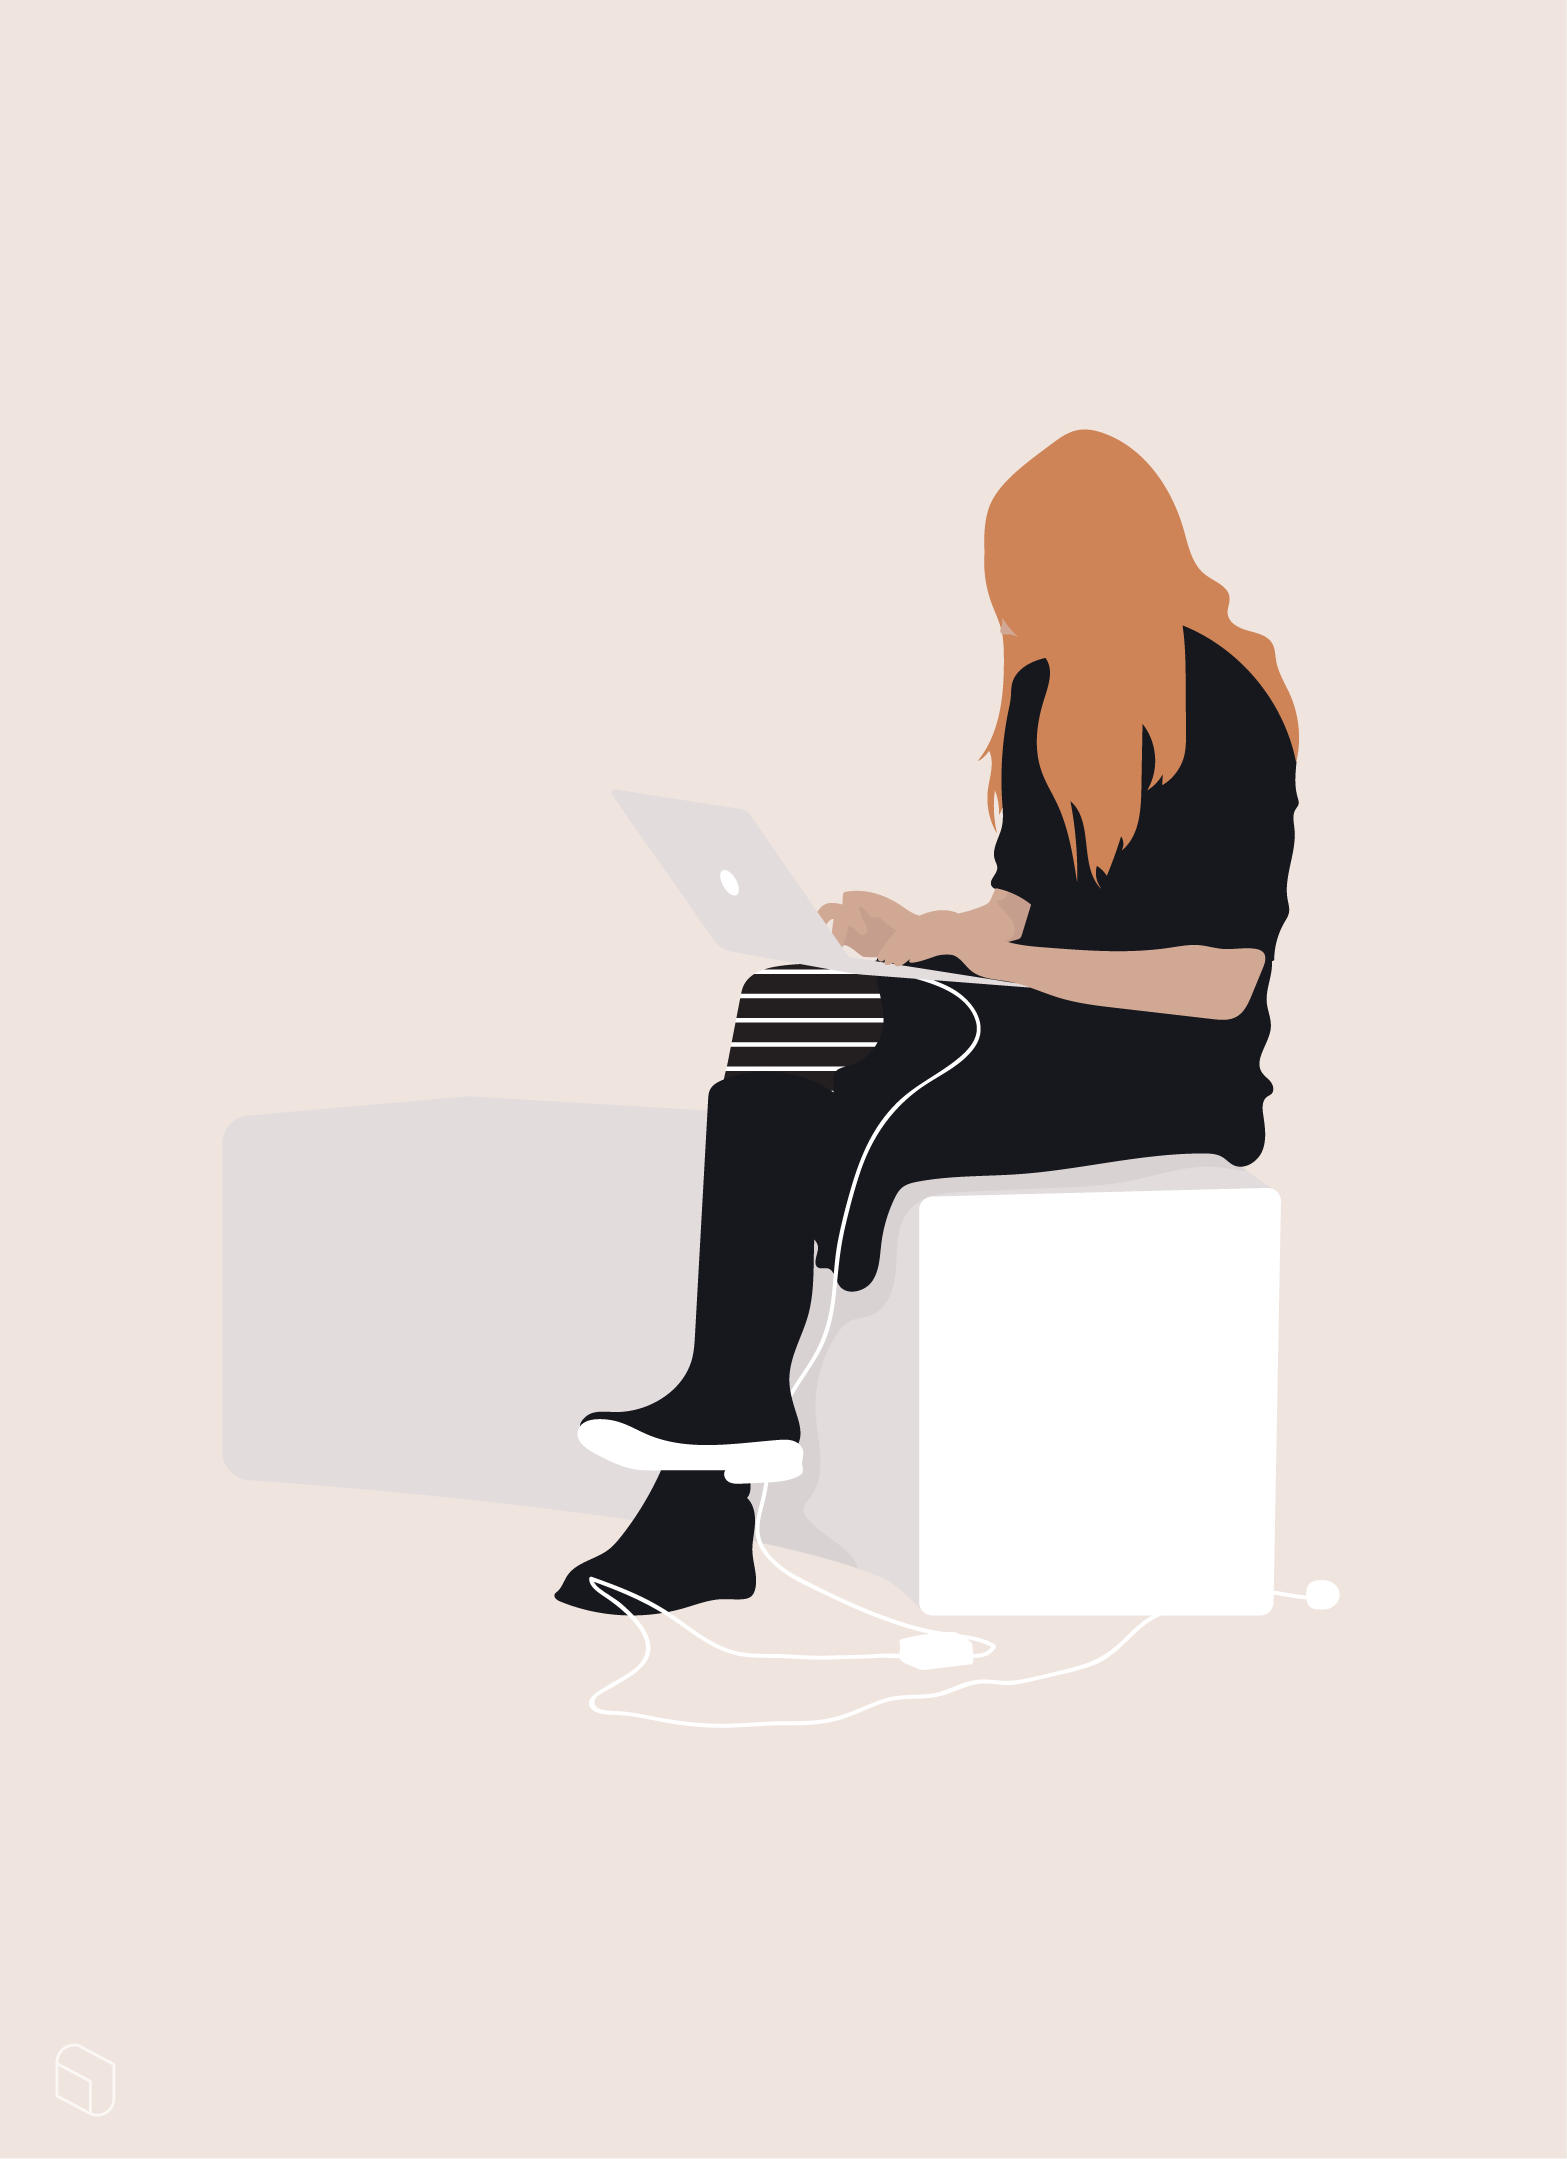 Flat Vector Woman Working With Laptop Flat Vector Woman People Illustration People Cutout Architecture People